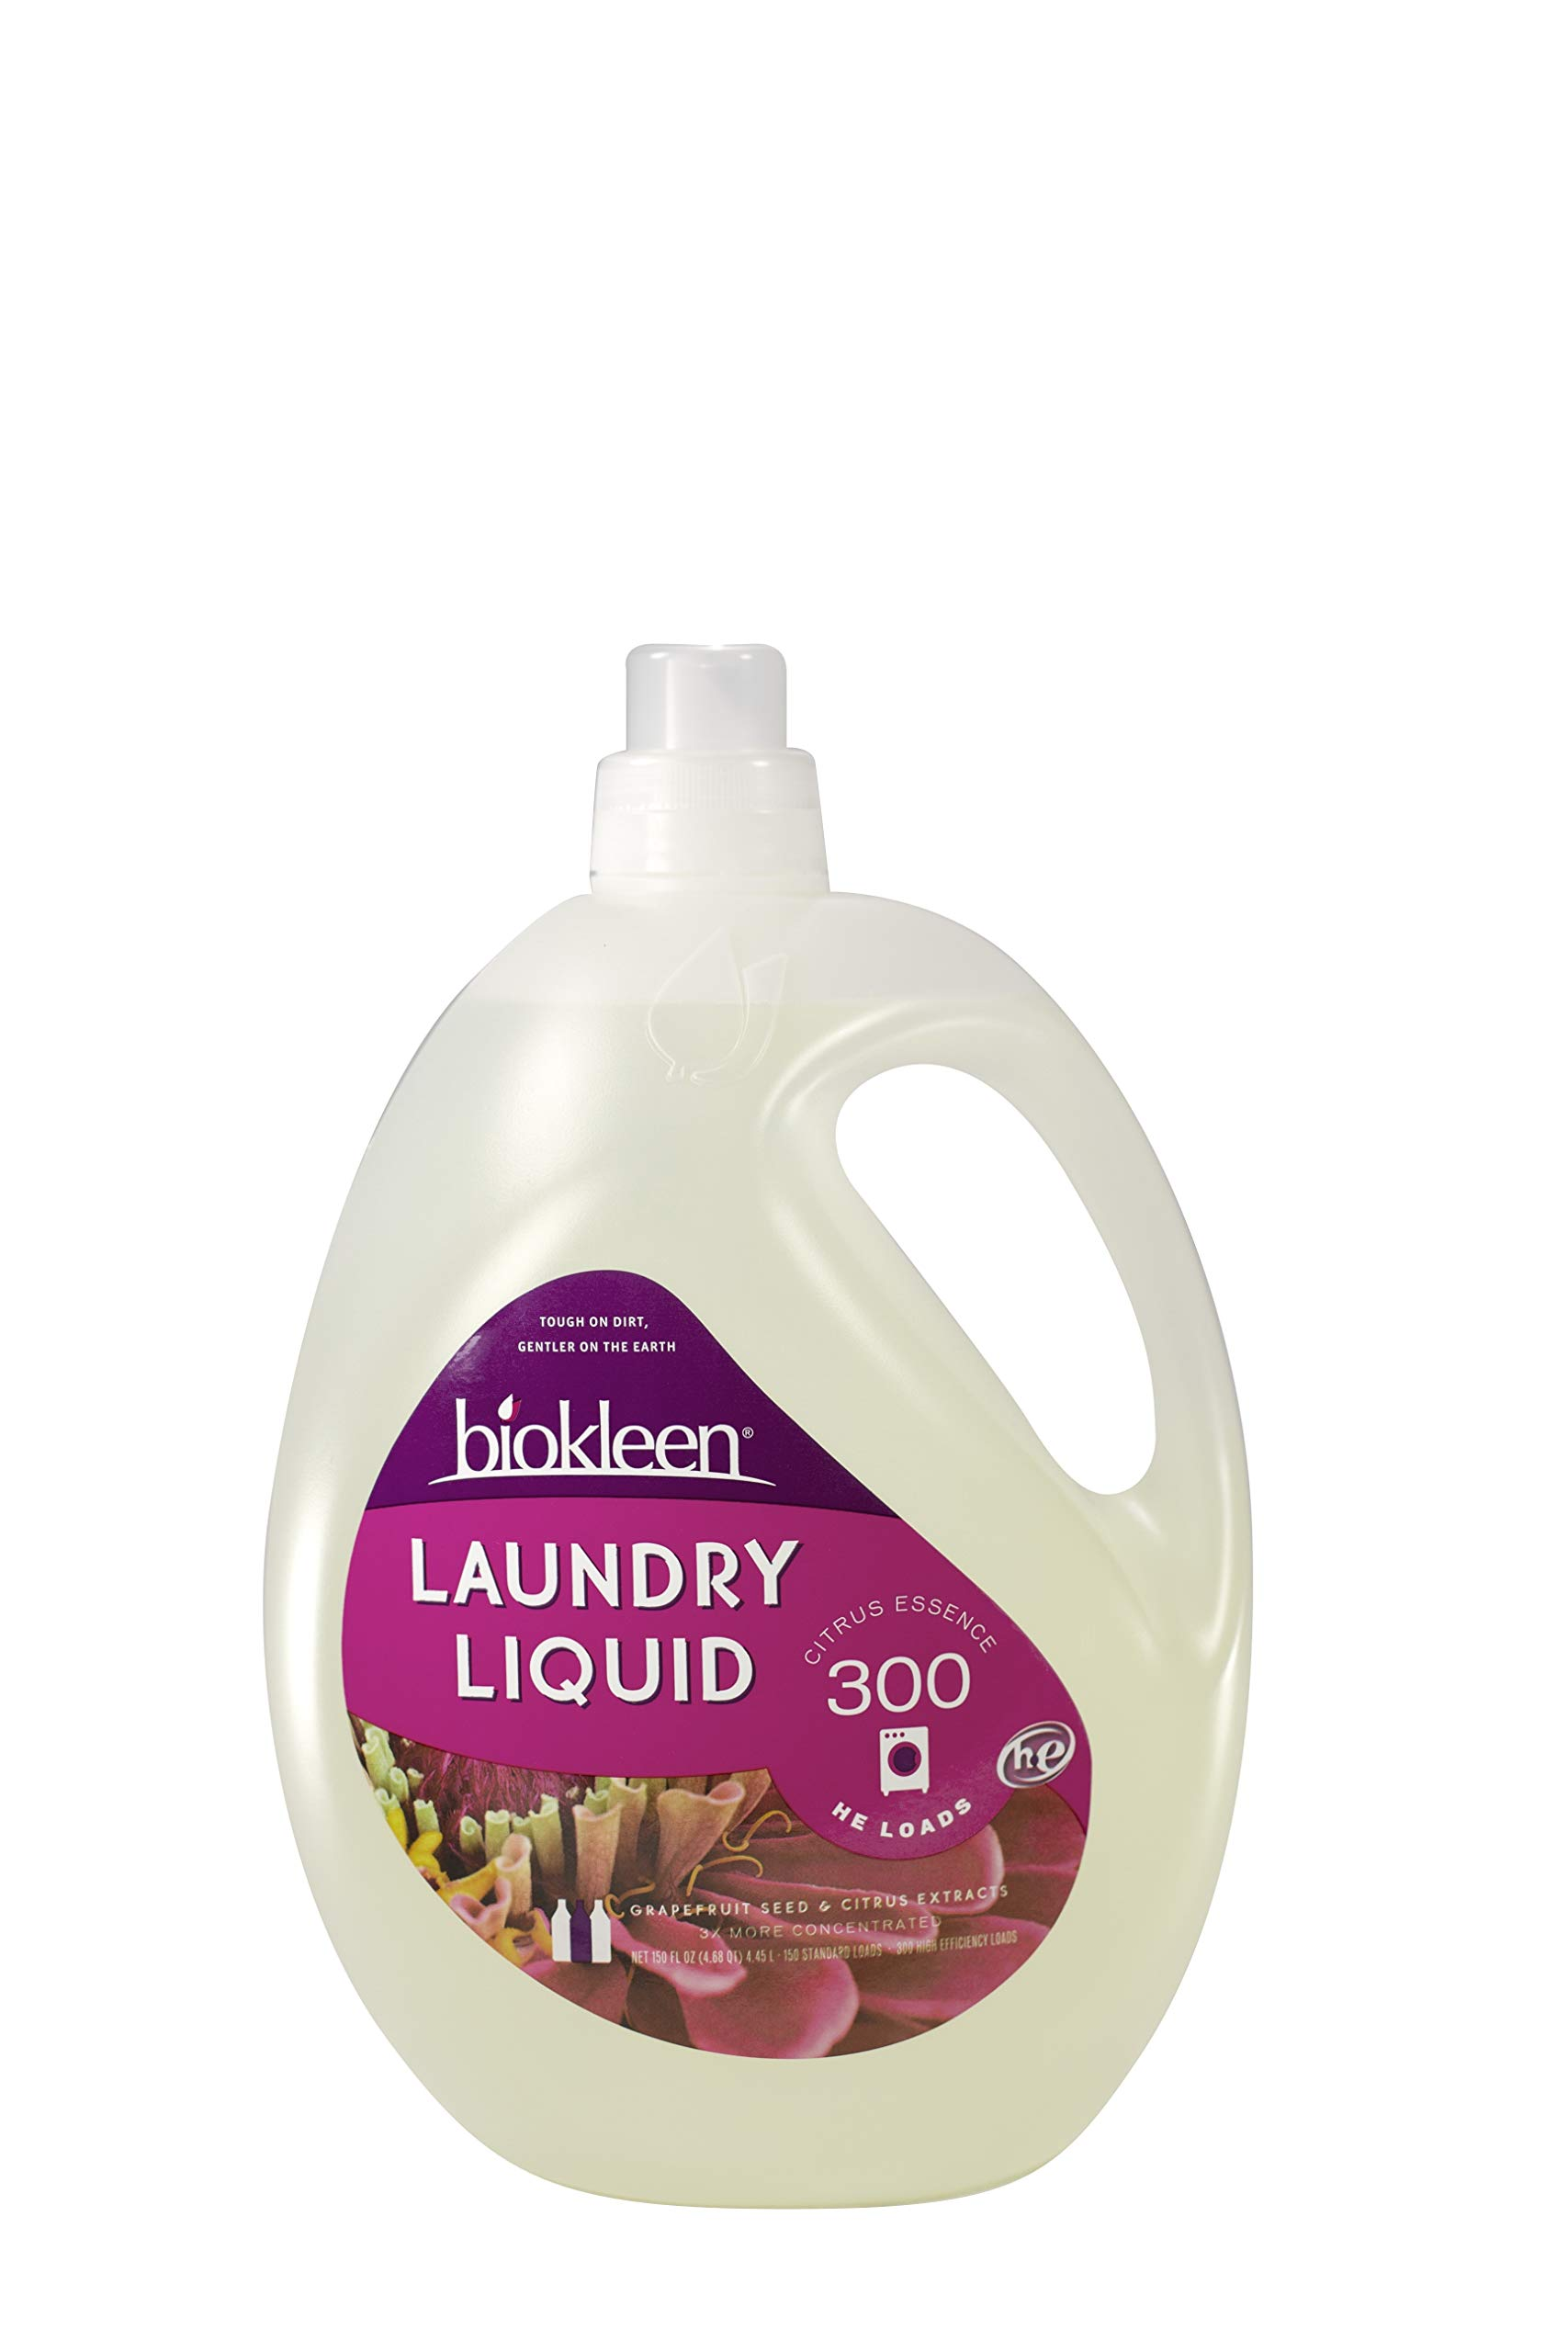 Biokleen Laundry Detergent Liquid, Concentrated, Eco-Friendly, Non-Toxic, Plant-Based, No Artificial Fragrance or Preservative, Citrus Essence, 150 Ounces - 300 HE Loads/150 Standard Loads (Pack of 3)